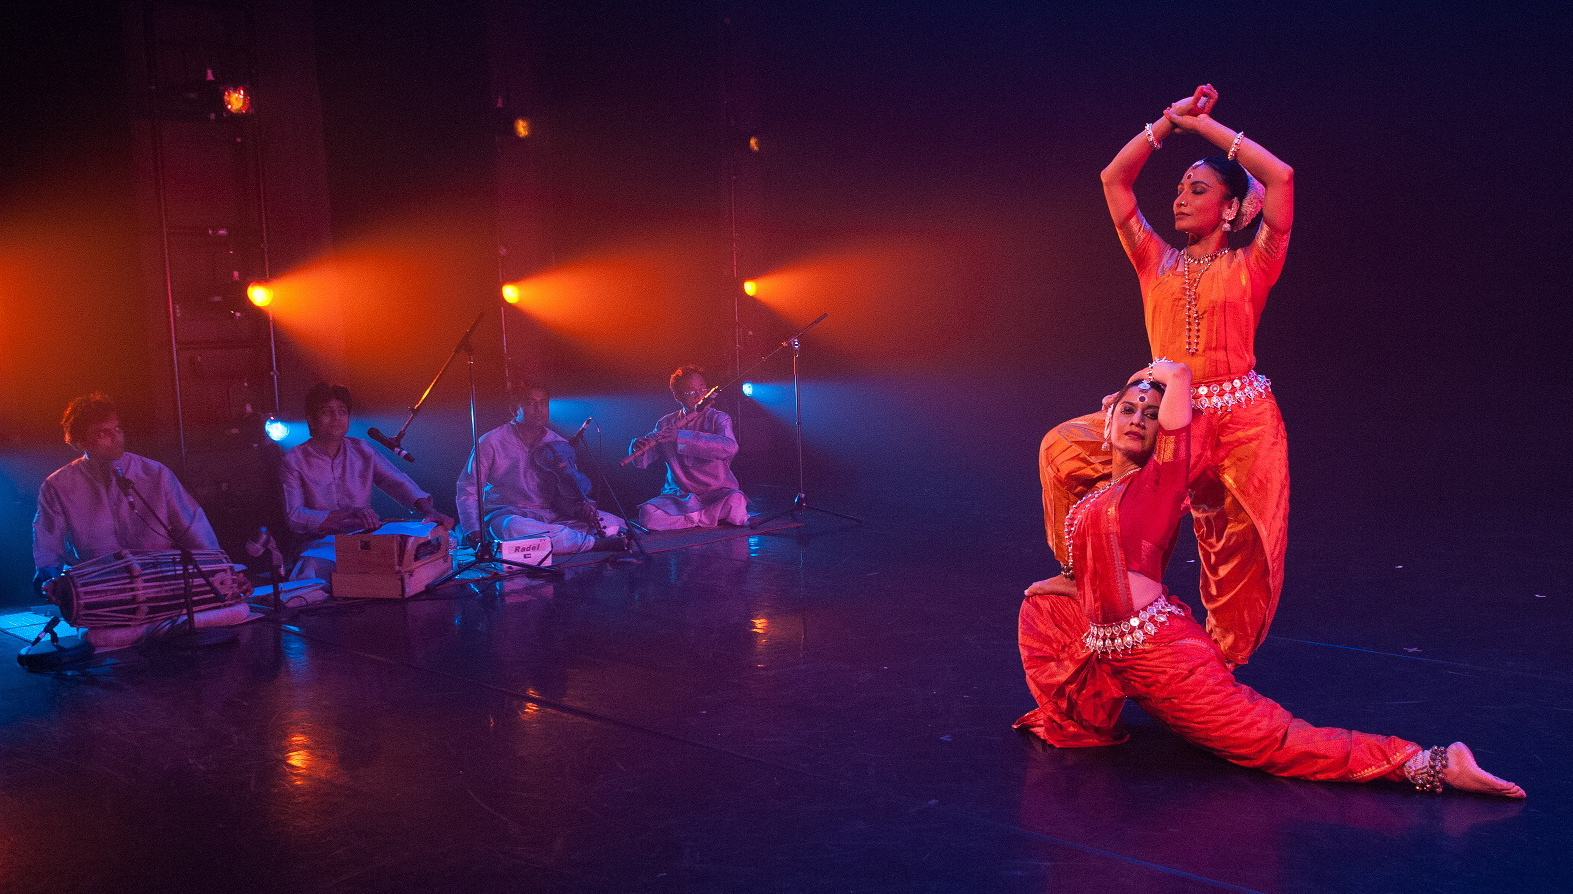 Even in dance, good things come in pairs. A duo from the famed Nrityagram center brings Indian classical dance to Pittsburgh, then later in the month come two contemporary shows: an evening of short modern ballets by Pittsburgh Ballet and a visit by Philly's modern dance troupe PHILADANCO.